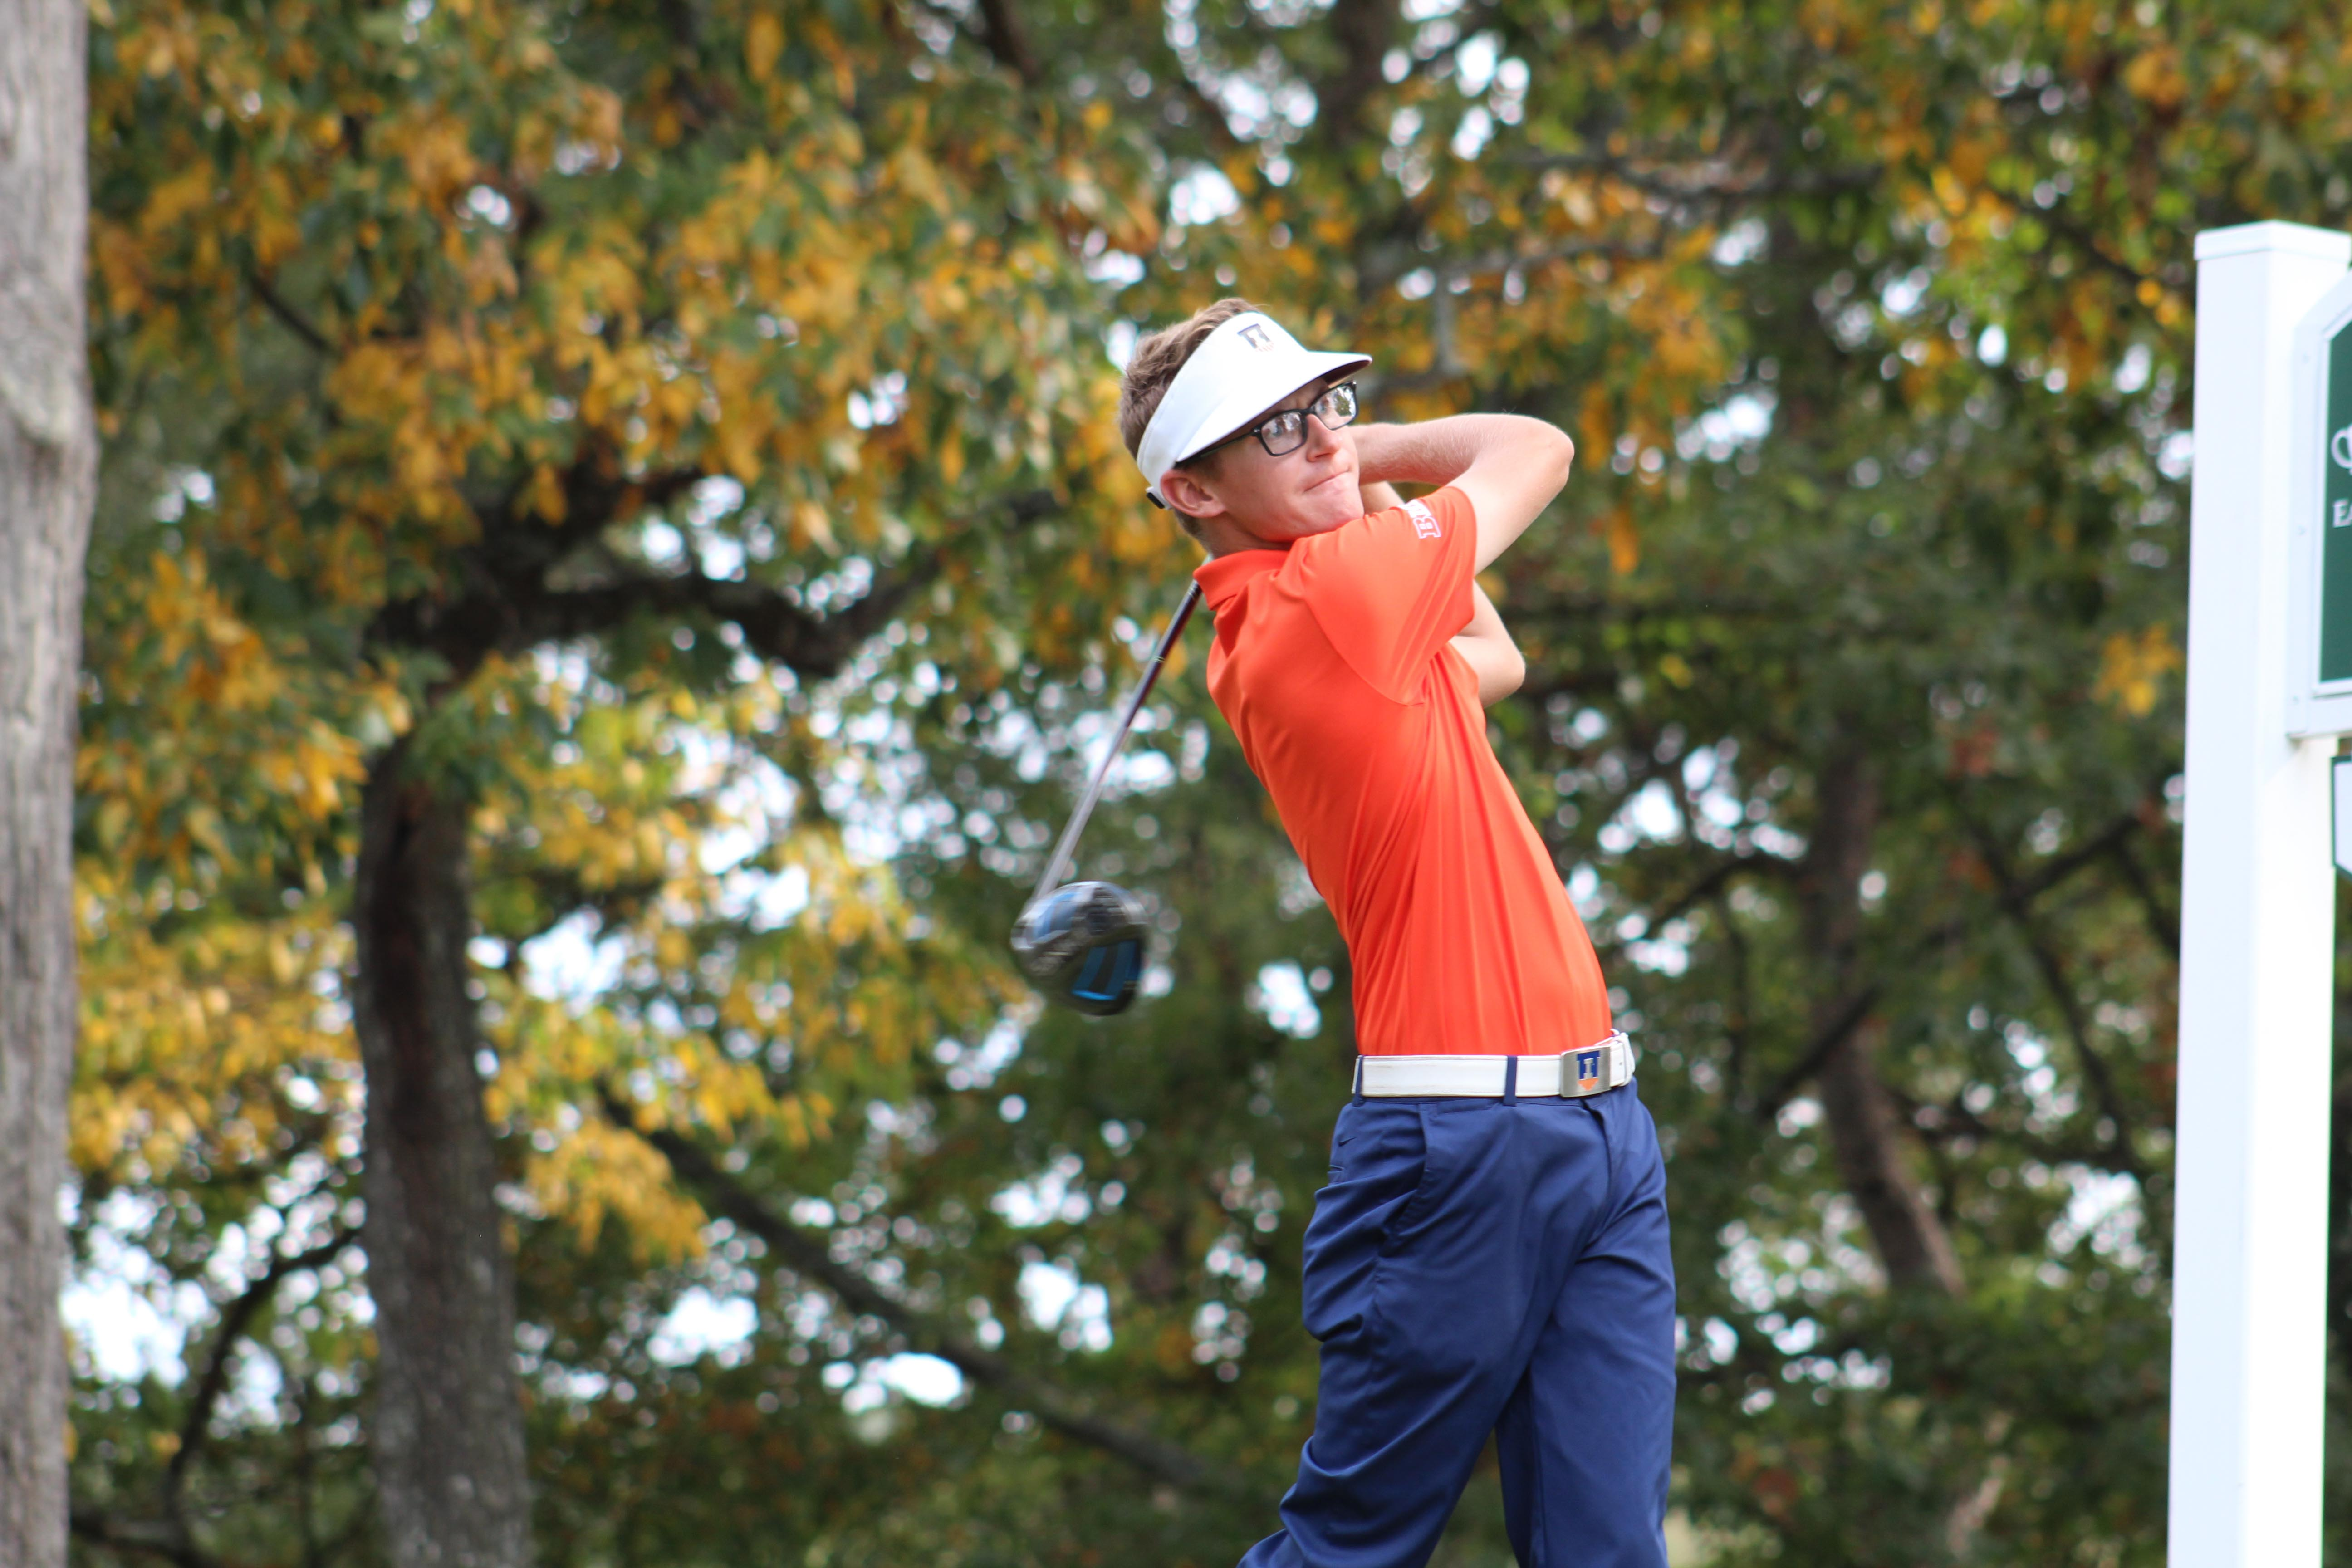 Junior Dylan Meyer's individual title win at the 3 a.m. Augusta Invitational was not enough for an Illini first-place finish this past weekend.